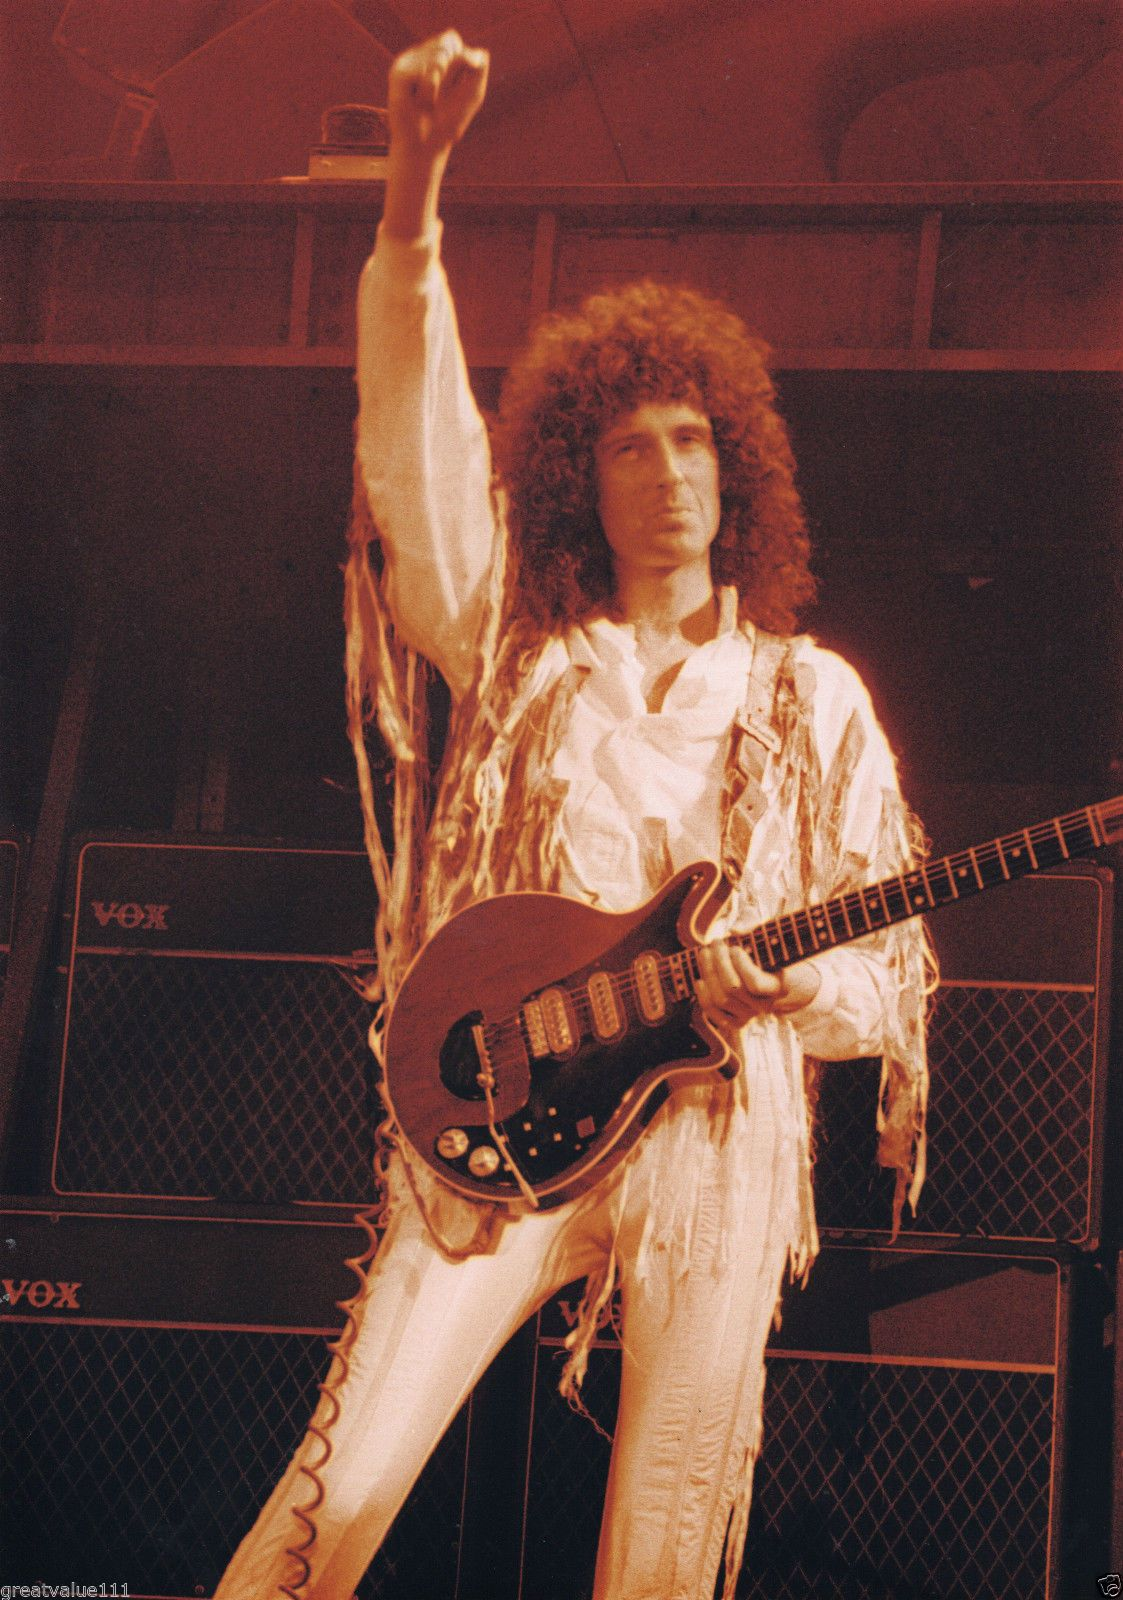 Brian May Queen Photo Unreleased Gem Live Aid 1985 Wembley Huge 12 Inch Tinted Brian May Queen Brian May Queen Photos